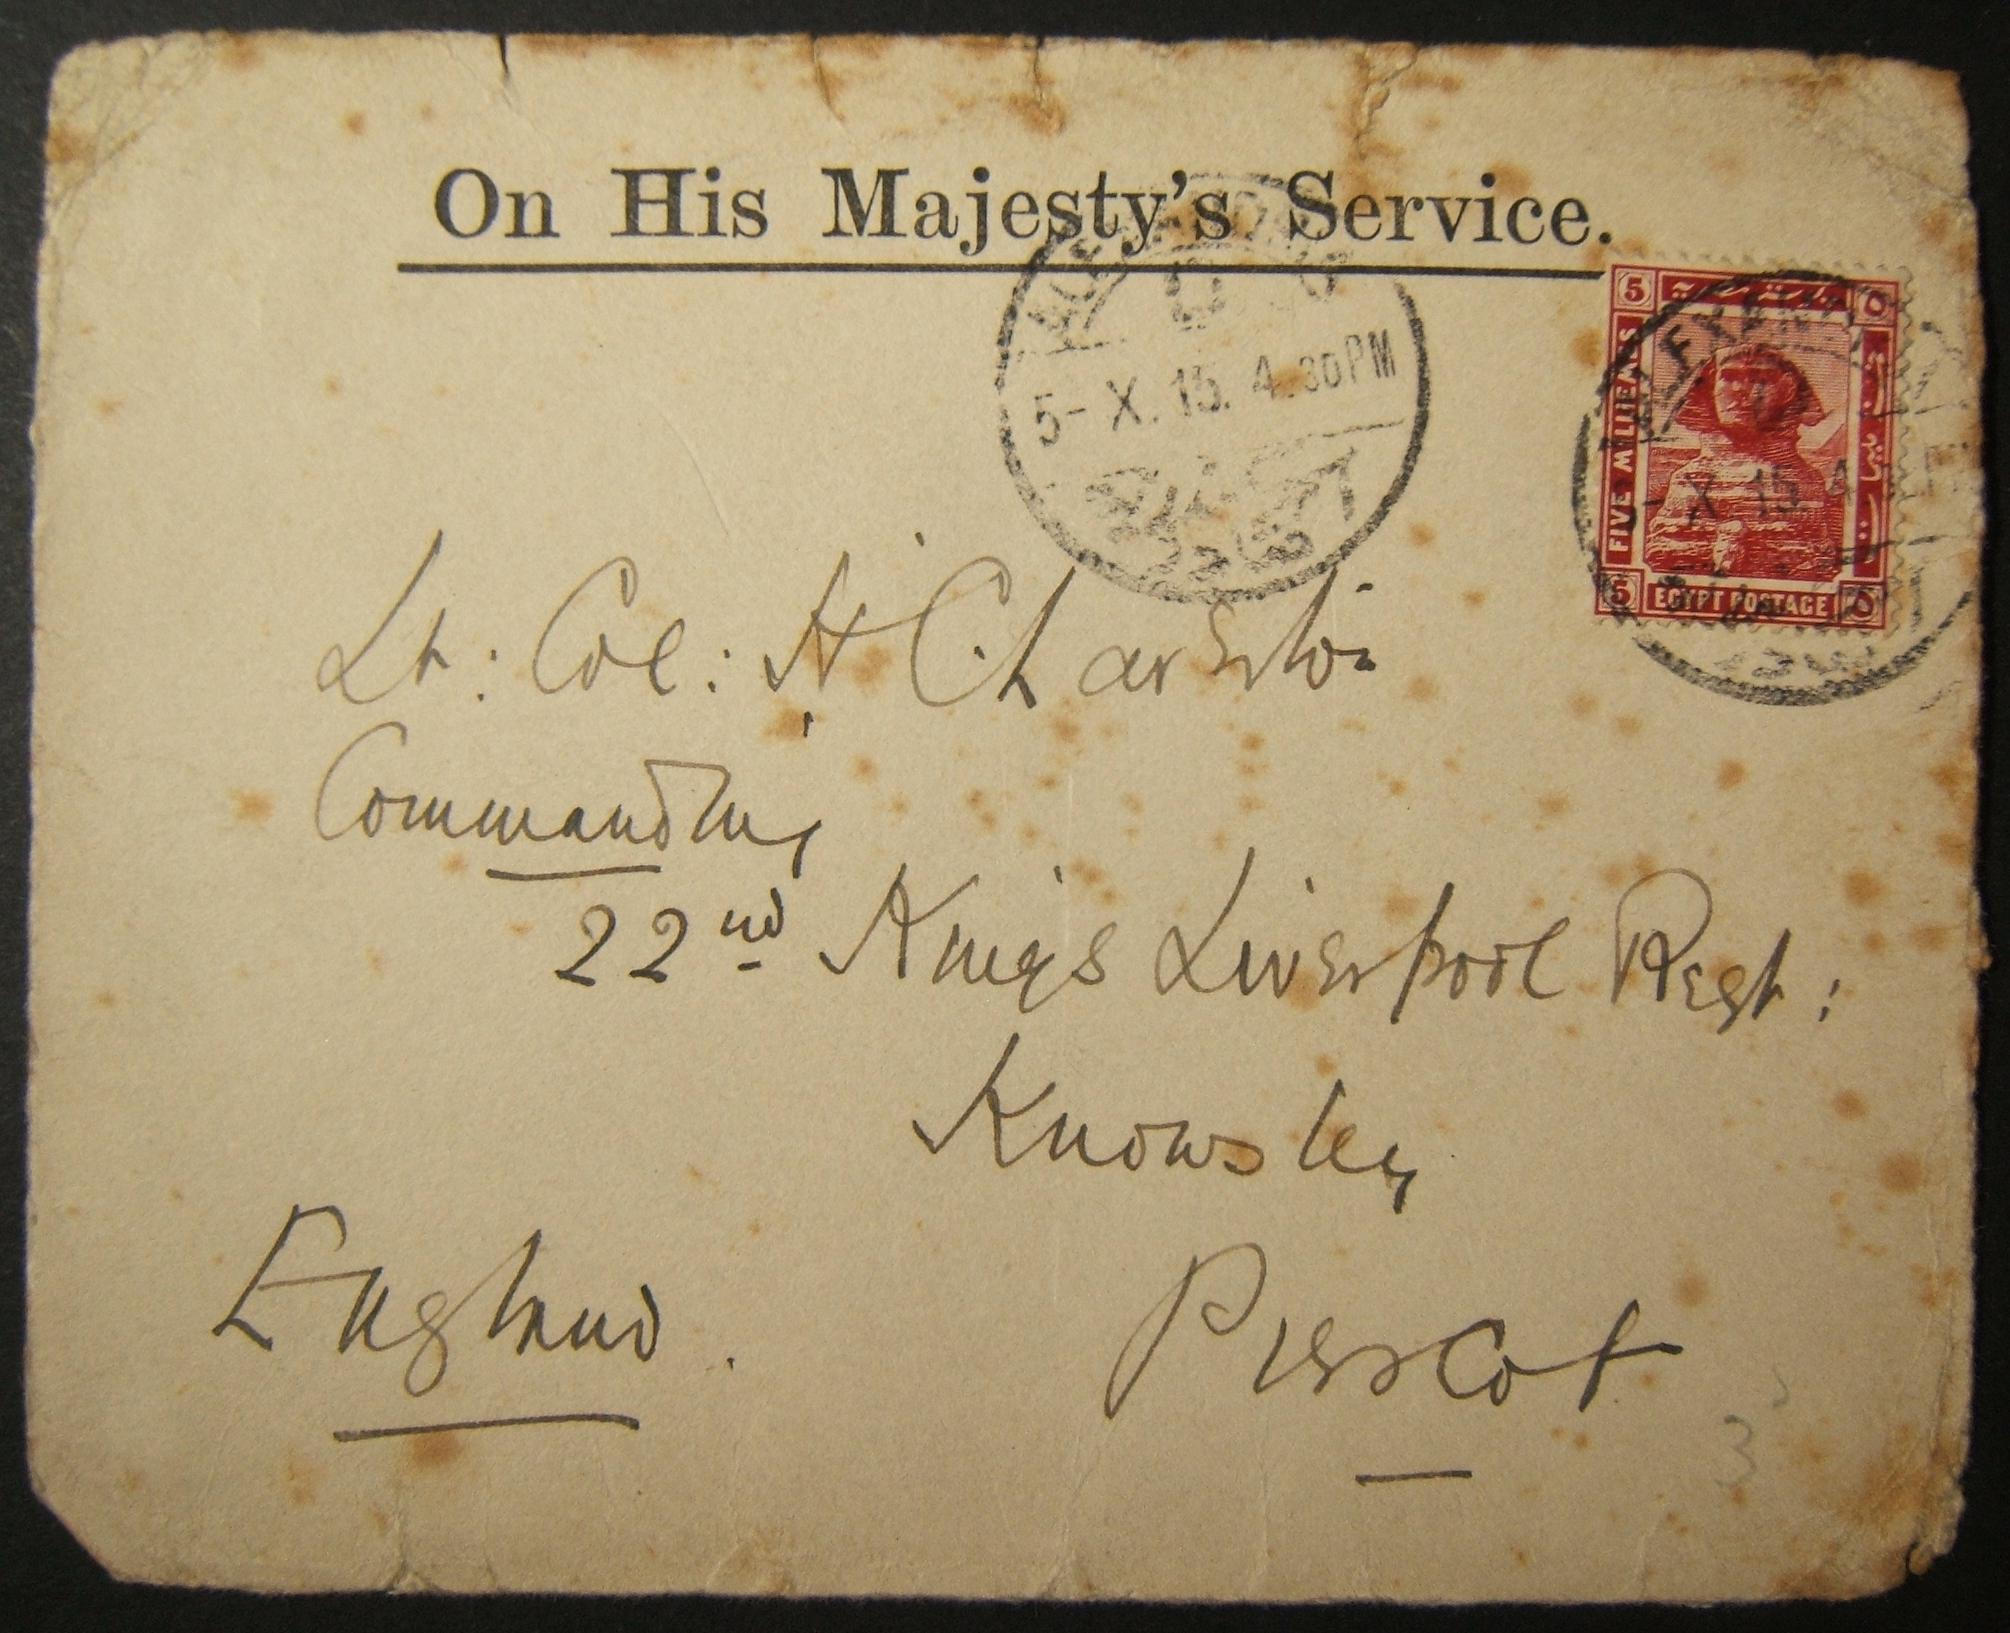 10/1915 WWI franked British civilian mail to UK sent via Egyptian post, with earliest dated postmark